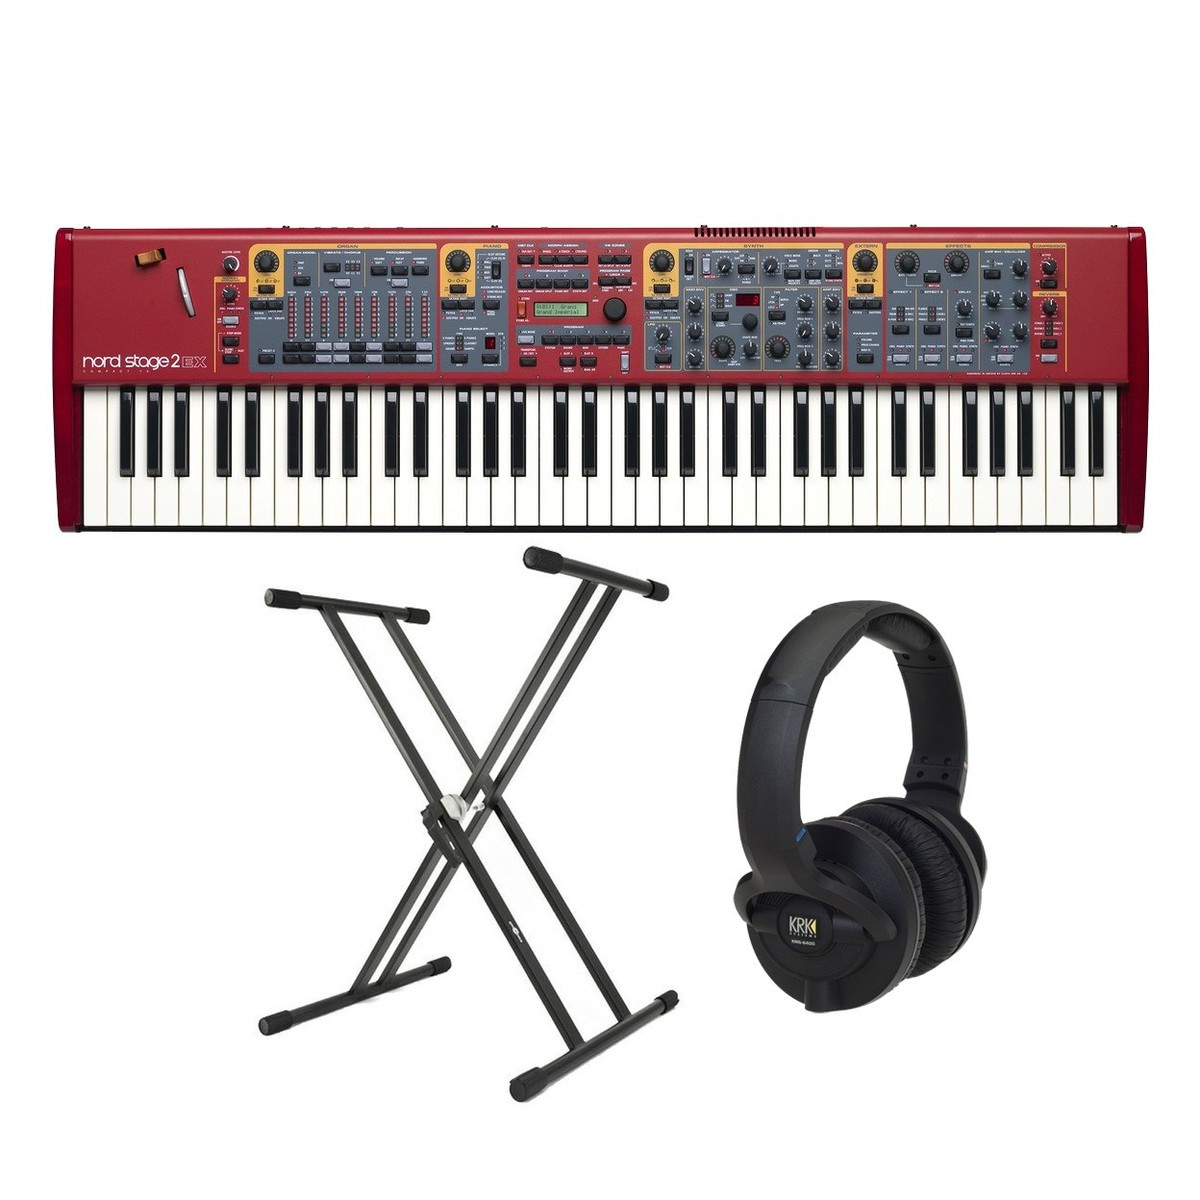 nord stage 2 ex compact 73 note keyboard with stand and headphones at gear4music. Black Bedroom Furniture Sets. Home Design Ideas